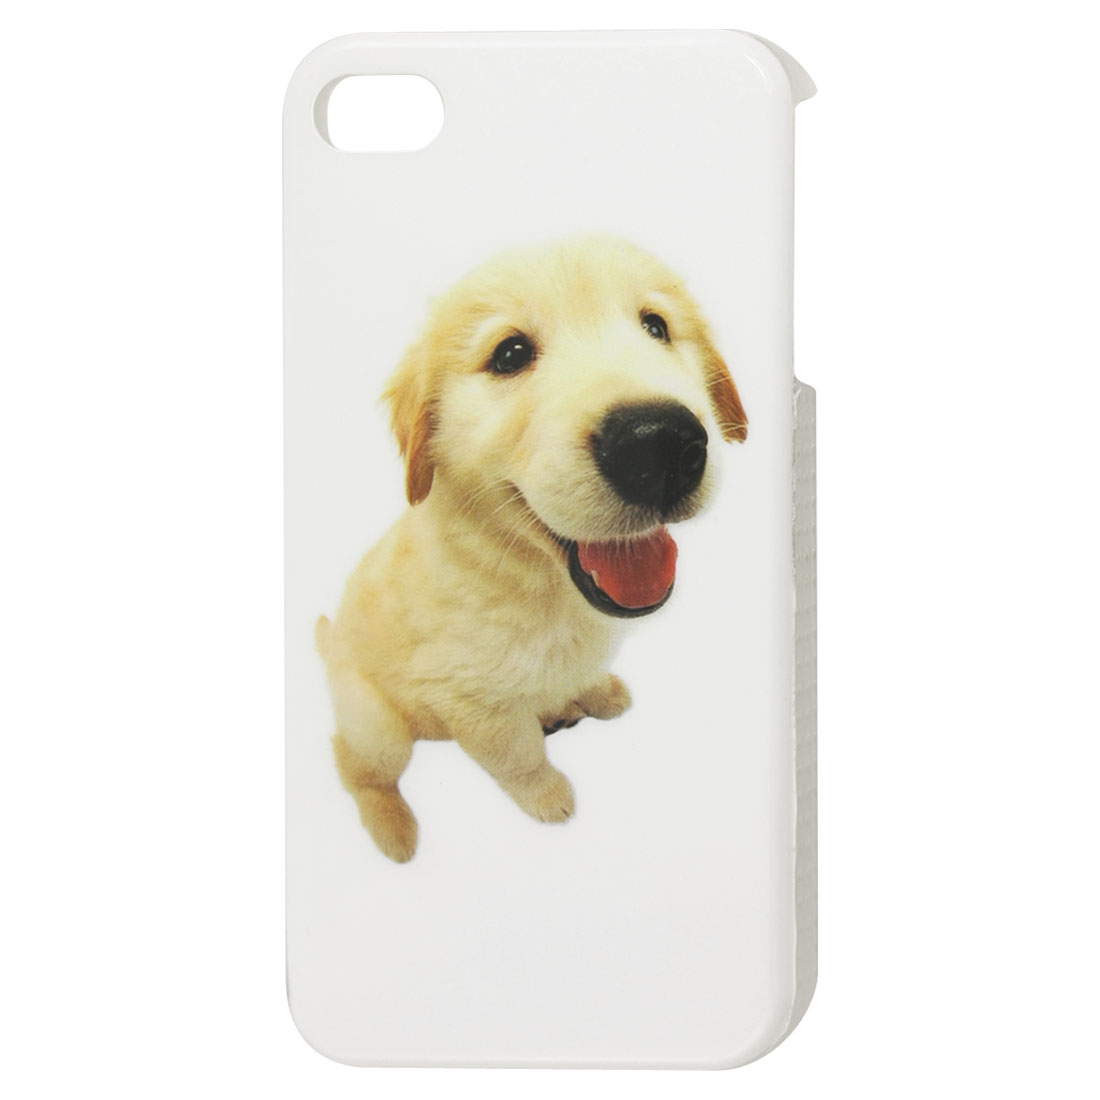 Protective Cute Dog IMD Hard Plastic Back Case for iPhone 4 4G 4S